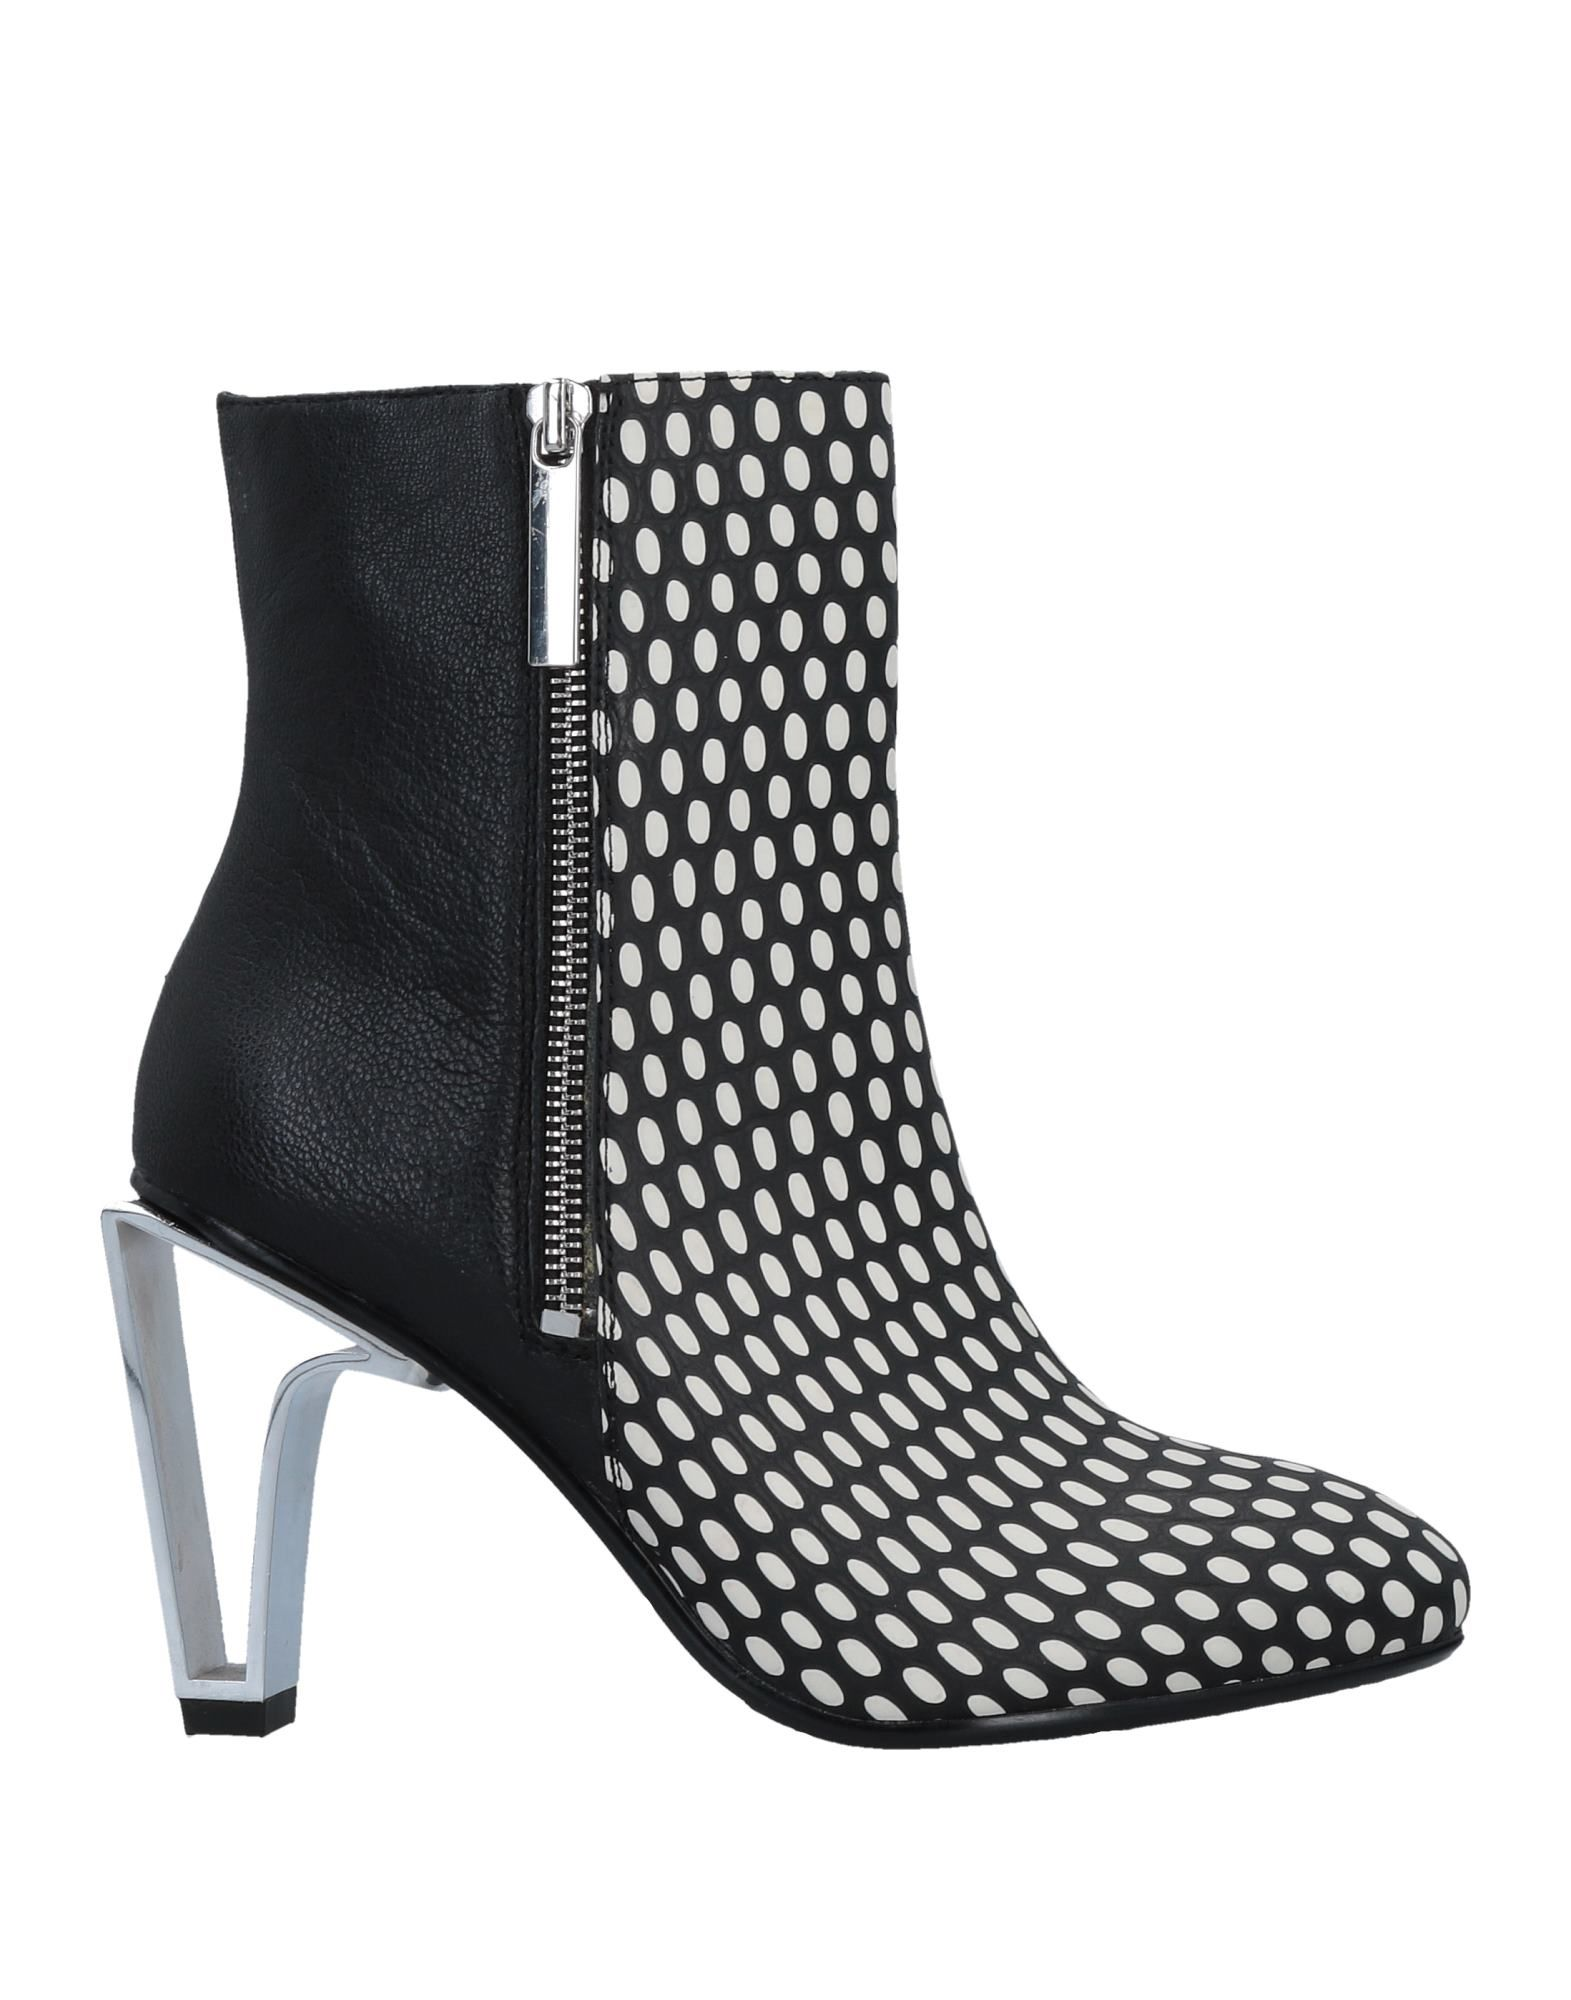 United Nude Ankle Boot - Women online United Nude Ankle Boots online Women on  Australia - 11507319SD 9b9f36